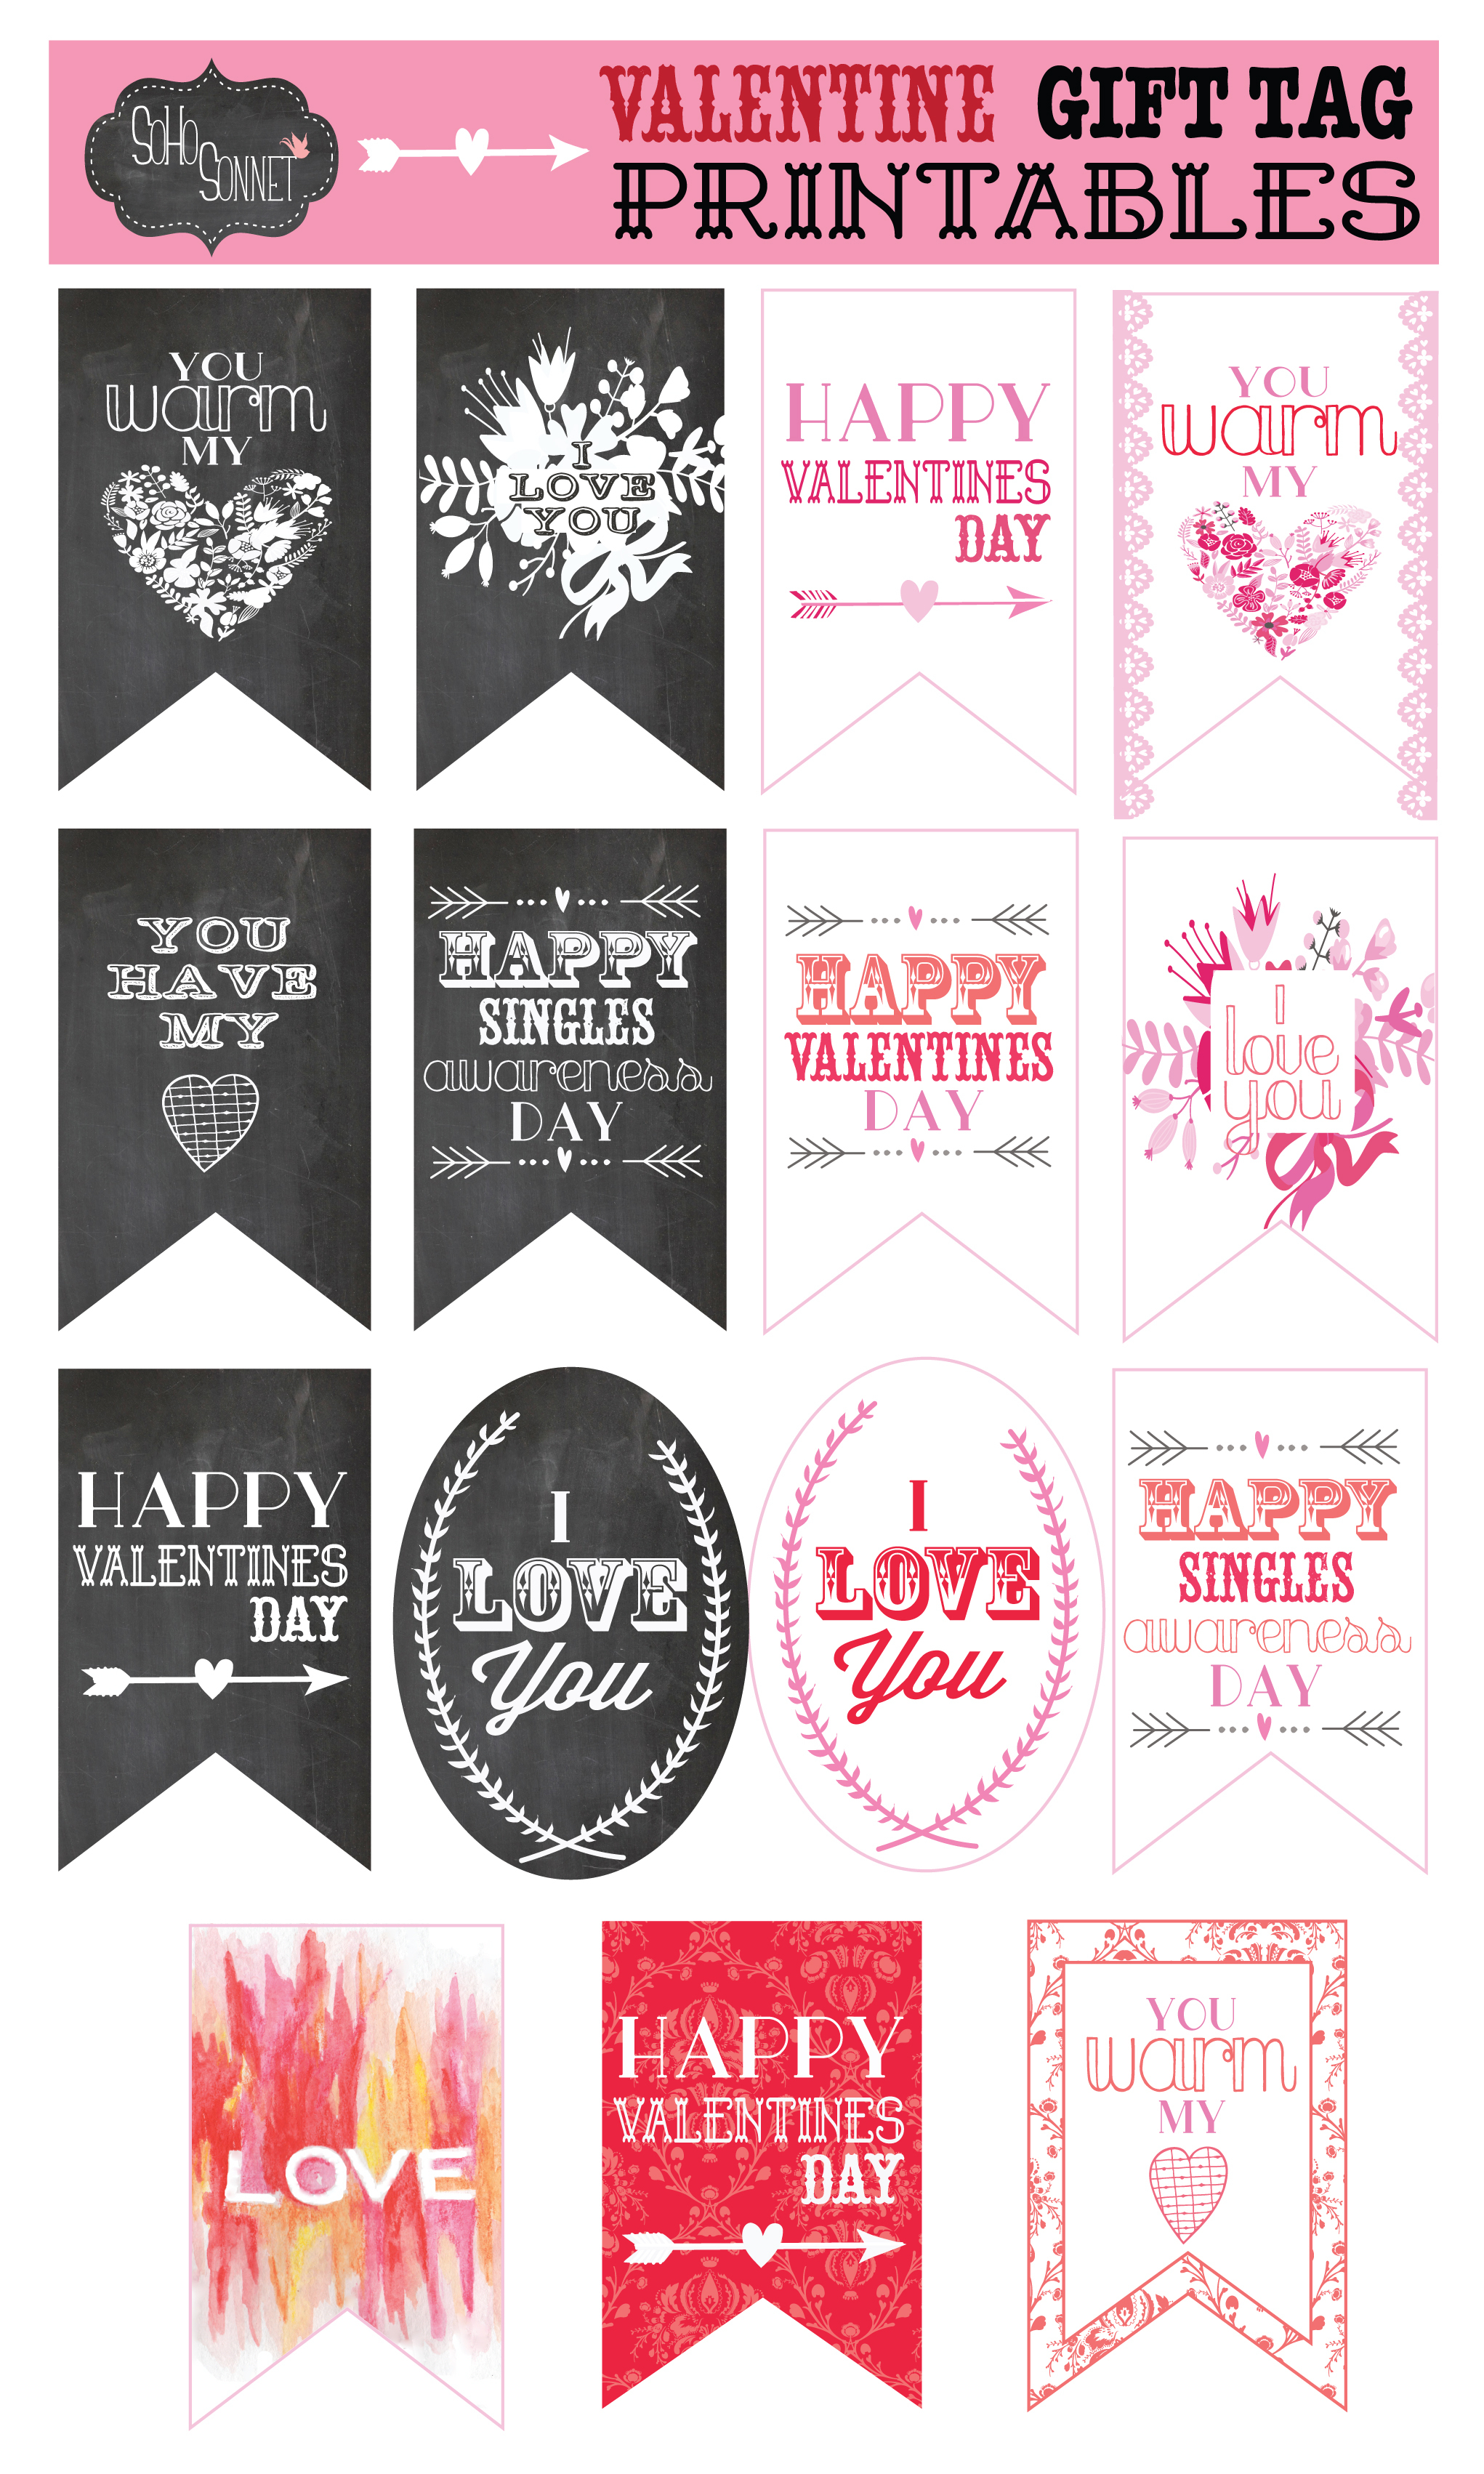 Free Valentine Gift Tag Printables - Sohosonnet Creative Living - Free Printable Valentine Tags